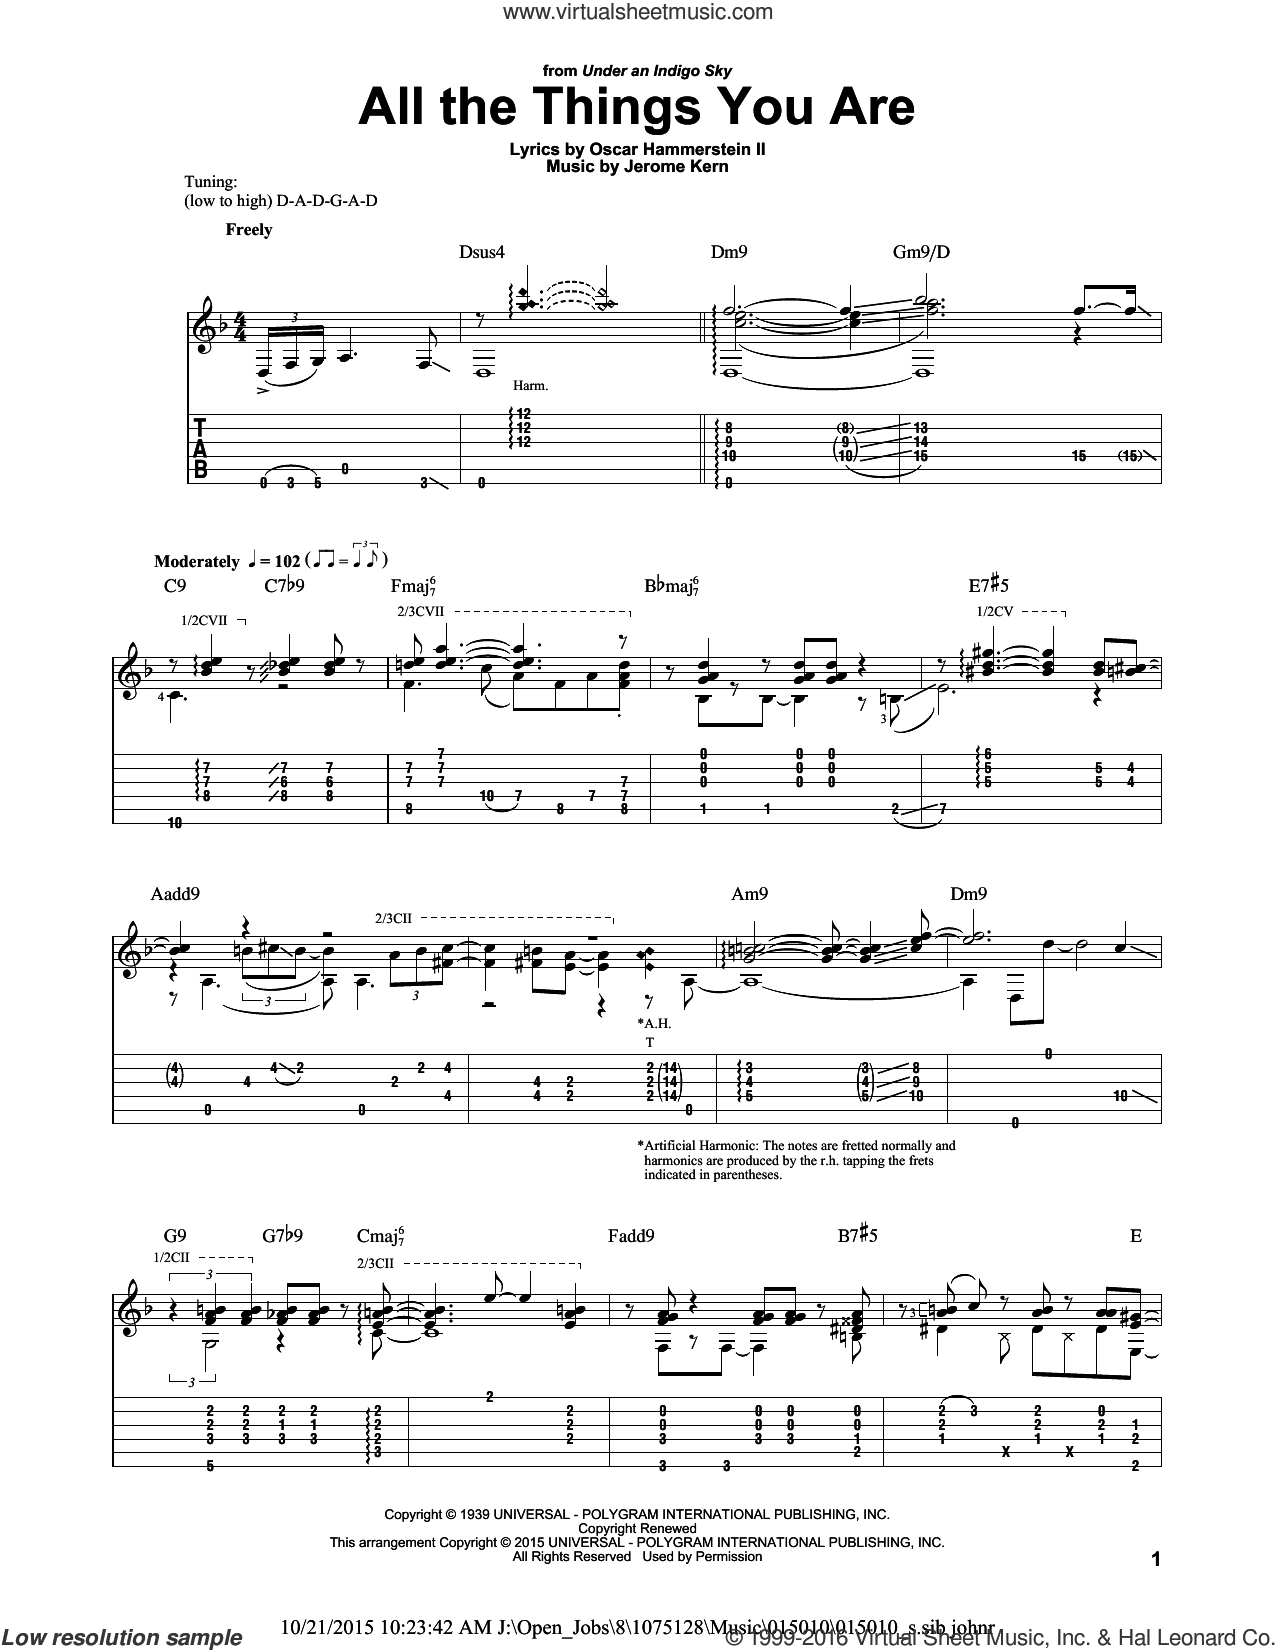 All The Things You Are sheet music for guitar solo by Oscar II Hammerstein, Laurence Juber, Jack Leonard with Tommy Dorsey Orchestra and Jerome Kern, intermediate skill level